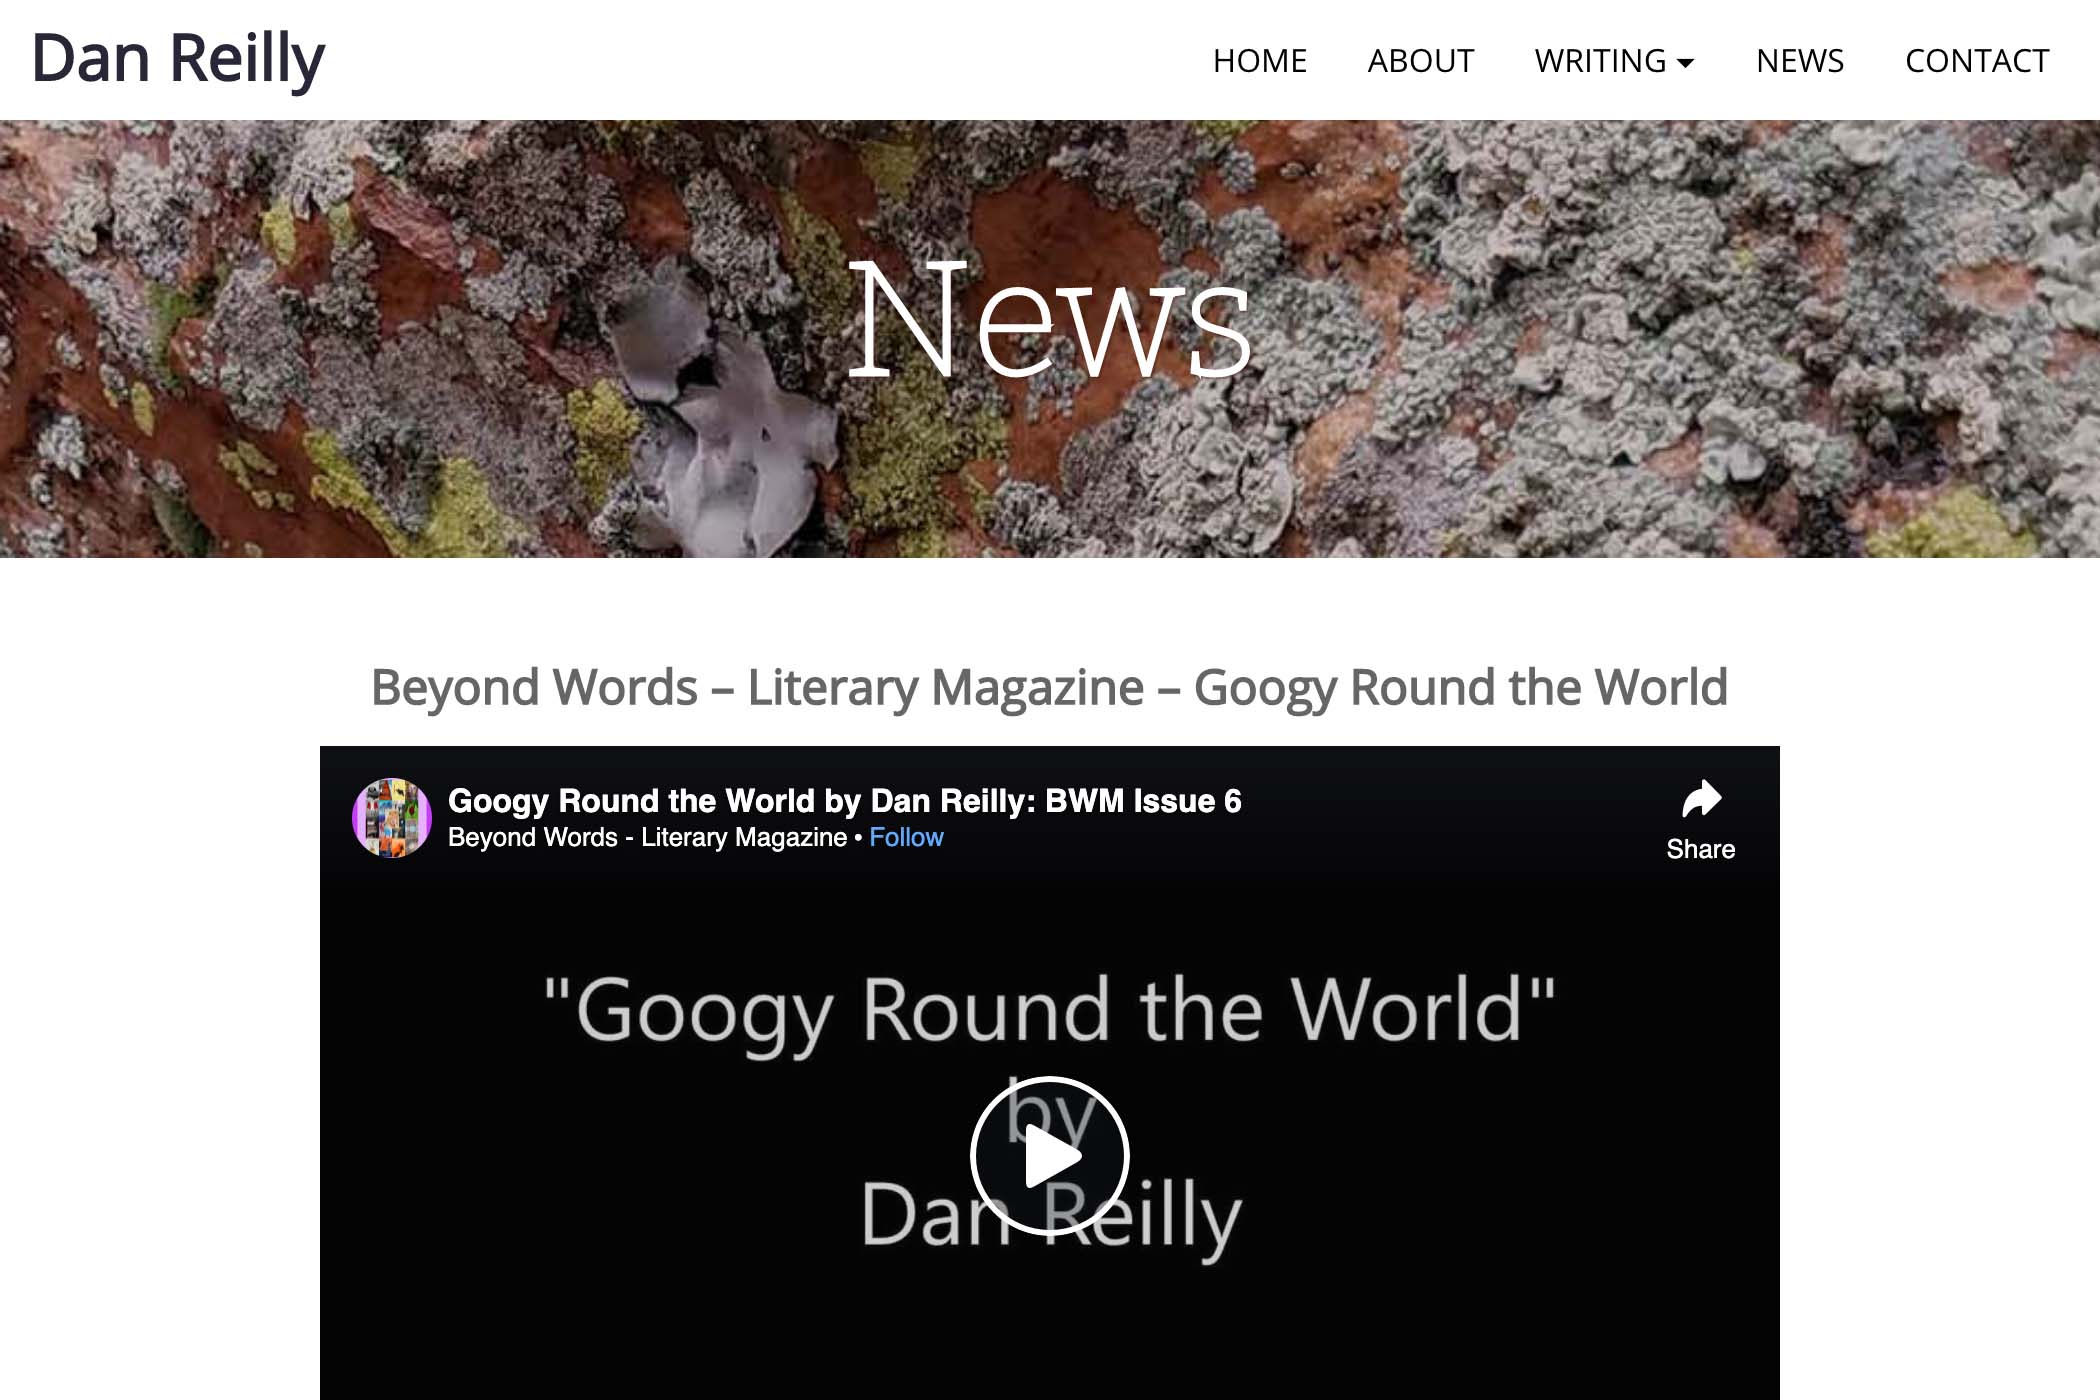 website design for a writer - news page